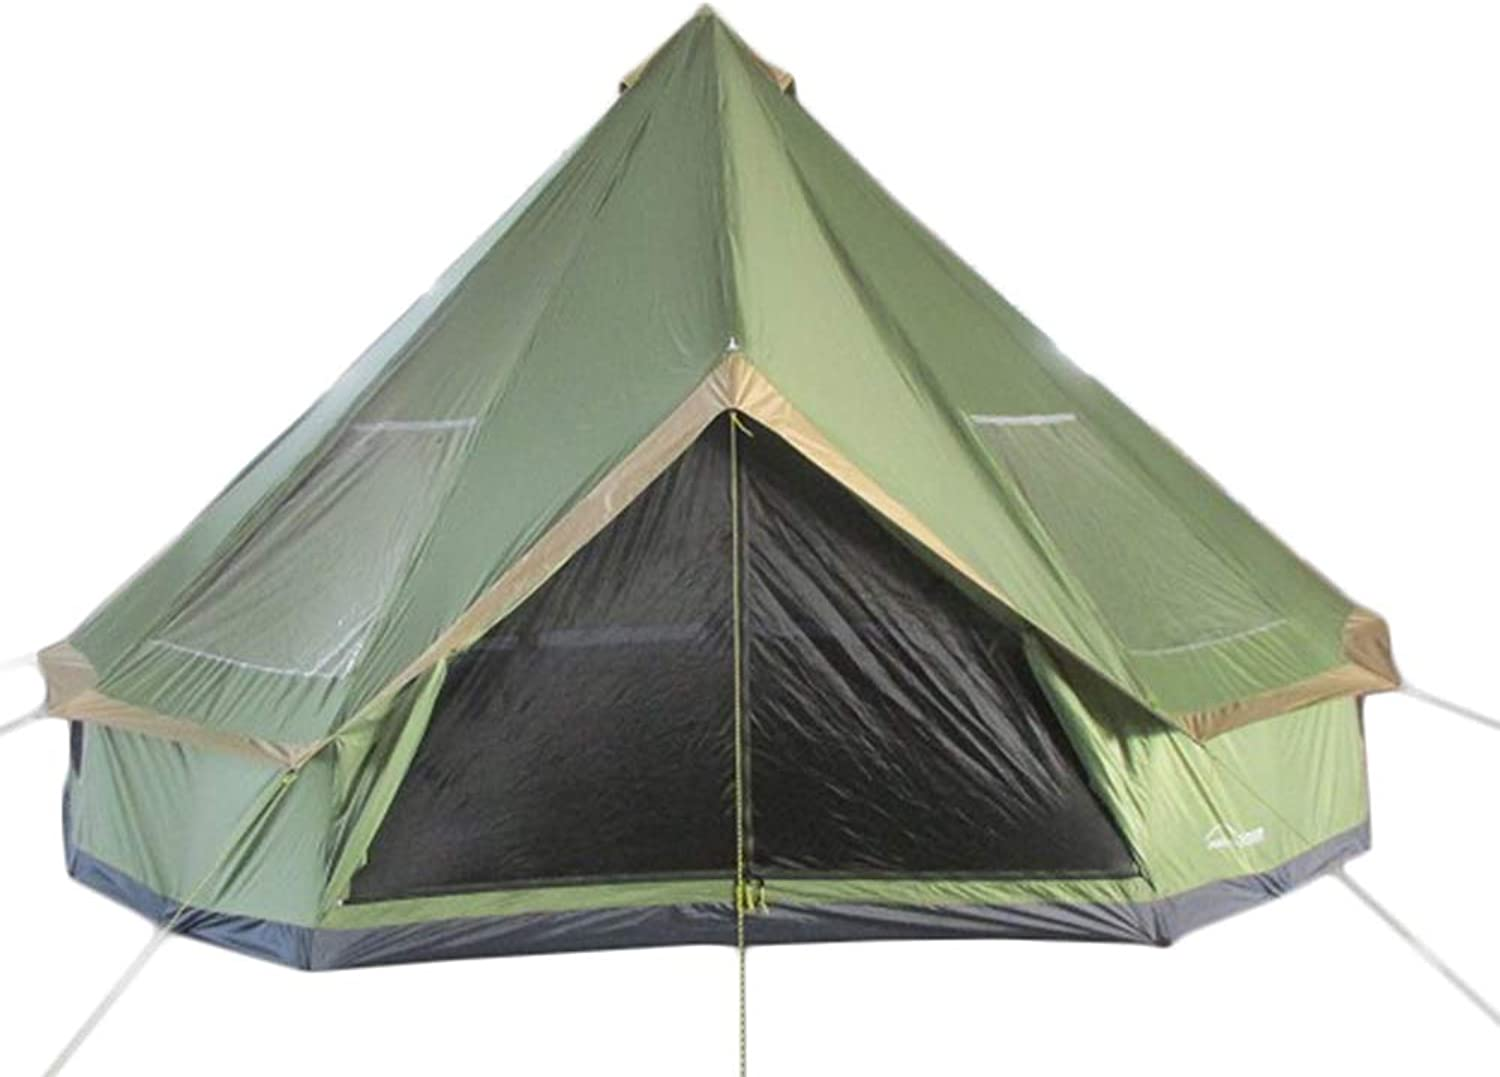 DANCHEL OUTDOOR 16.4ft AntiSmear Silver Coated Yurt Tents for Family Campping 30LB Light Weight